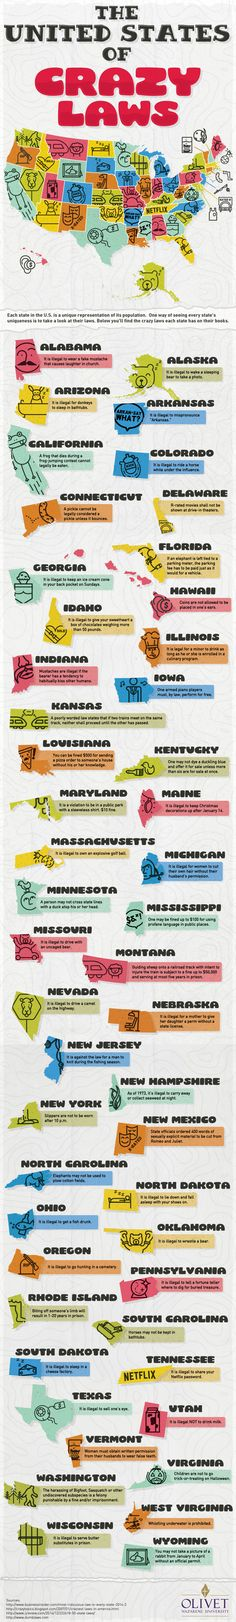 Infographic: Here are the weirdest laws on the books in every US state - Matador Network